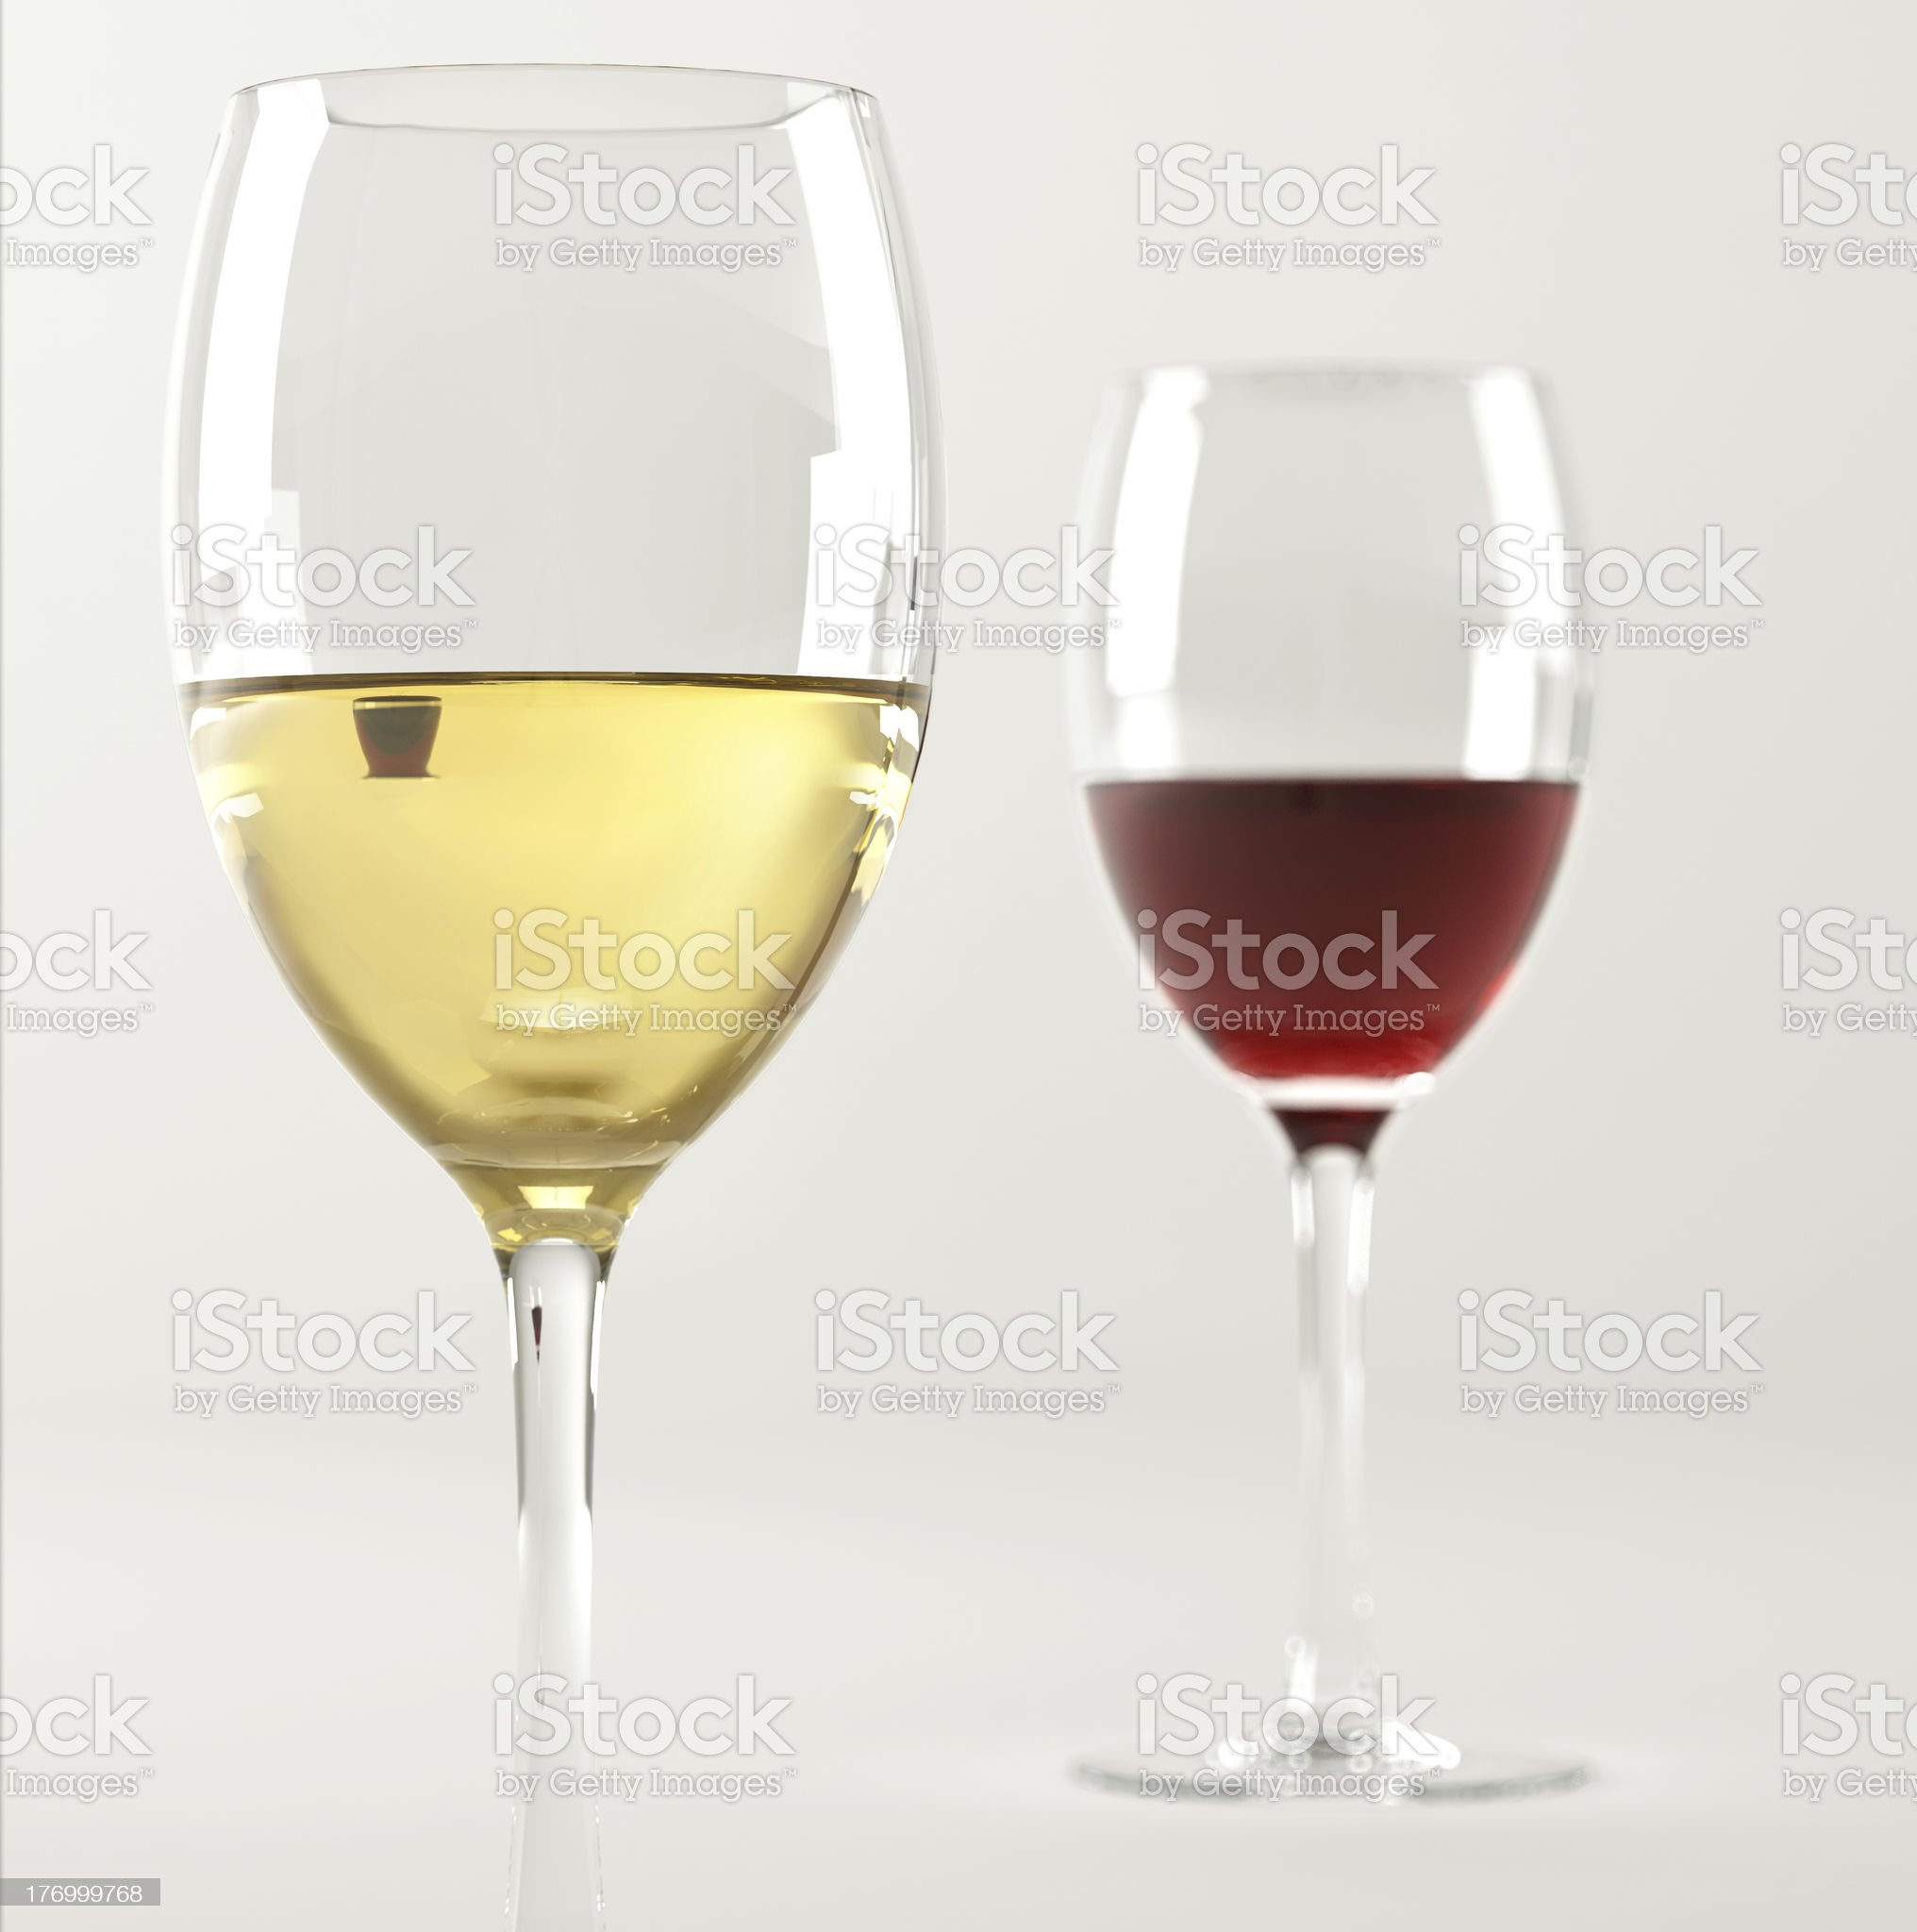 Two glasses of wine, white and red. royalty-free stock photo